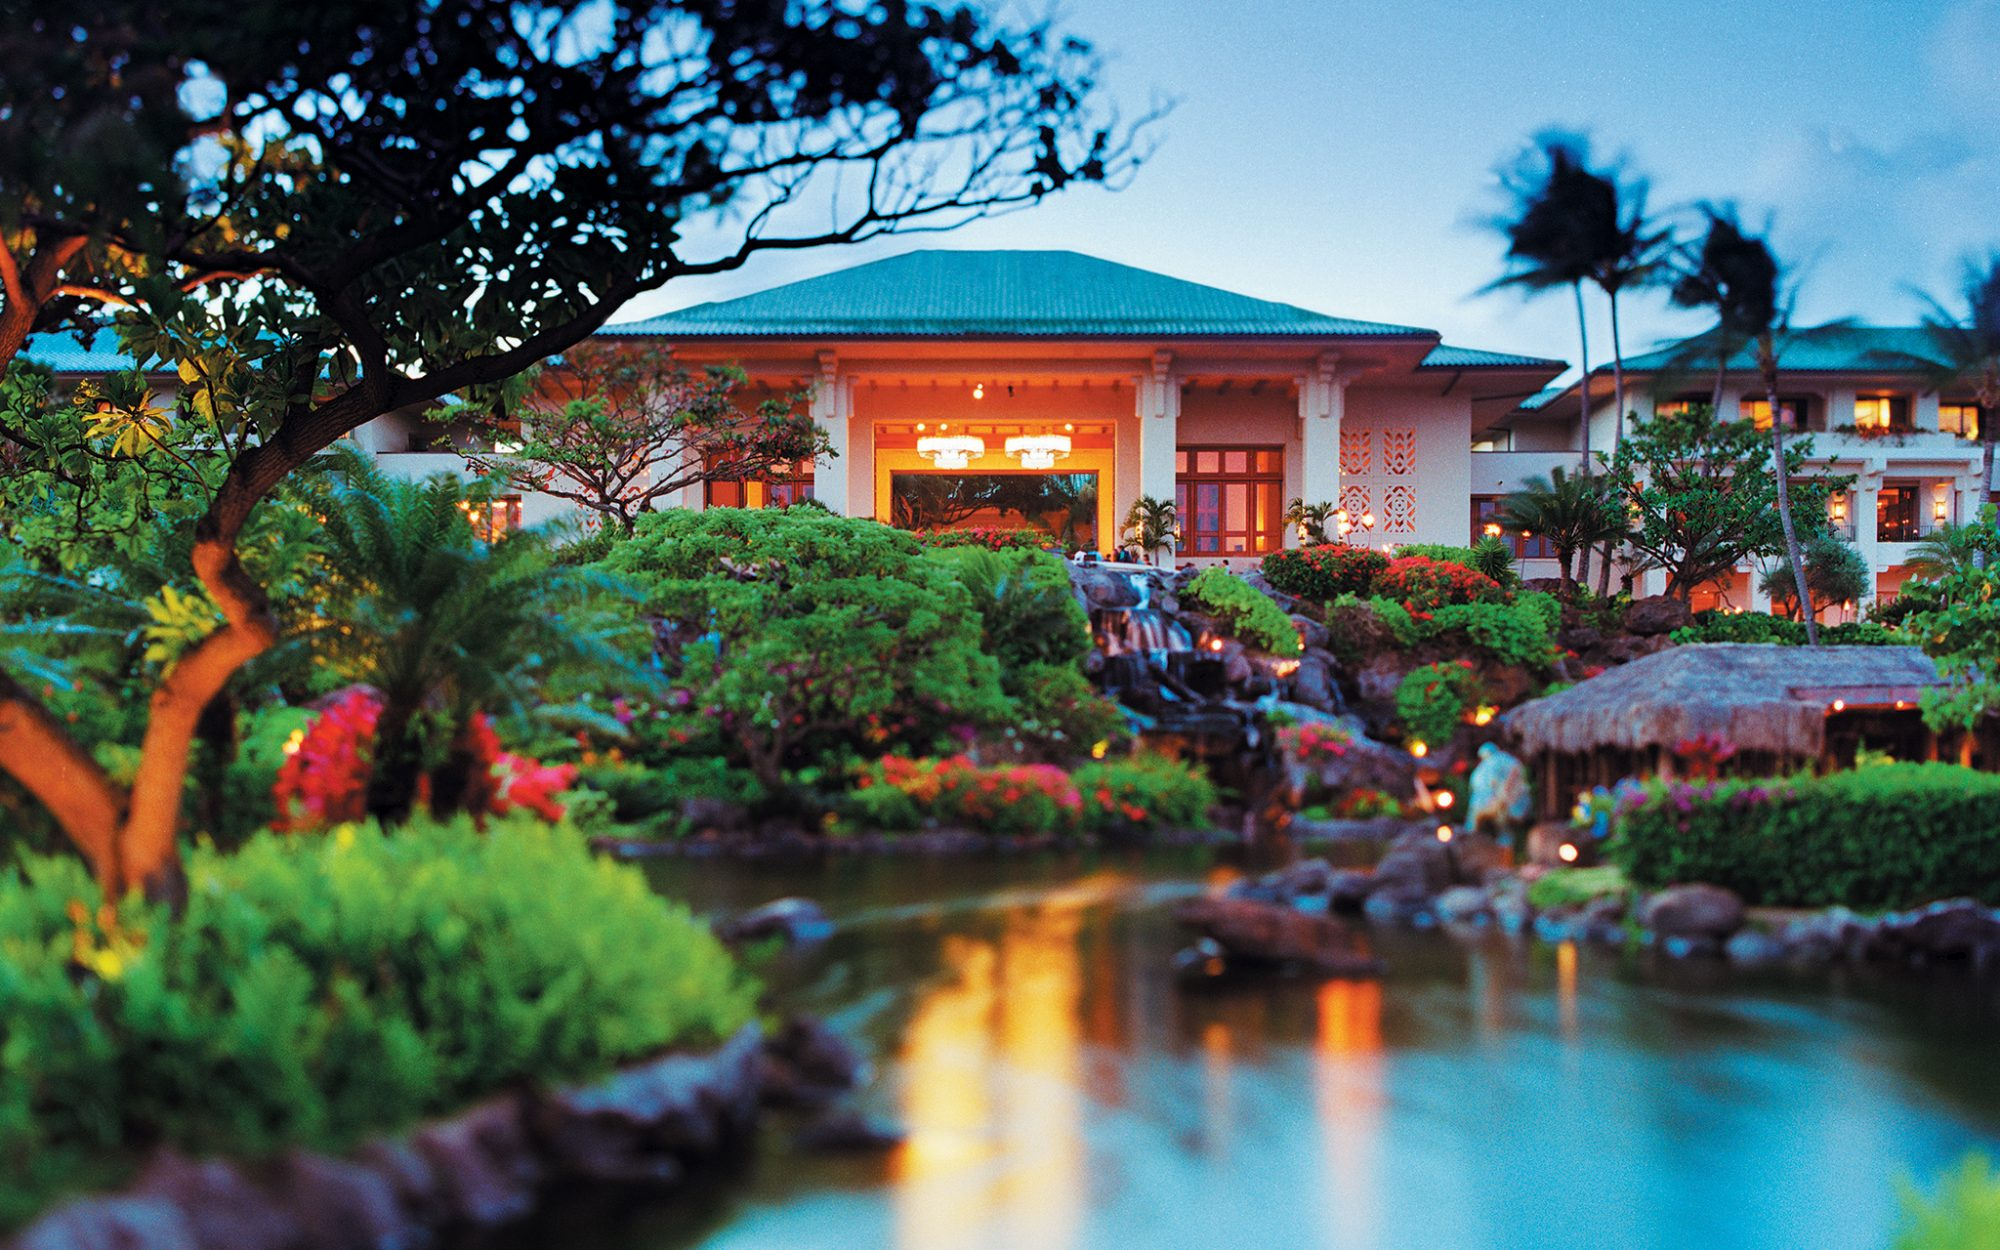 Best Family Beach Hotels: No. 15 Grand Hyatt Kauai Resort & Spa, HI